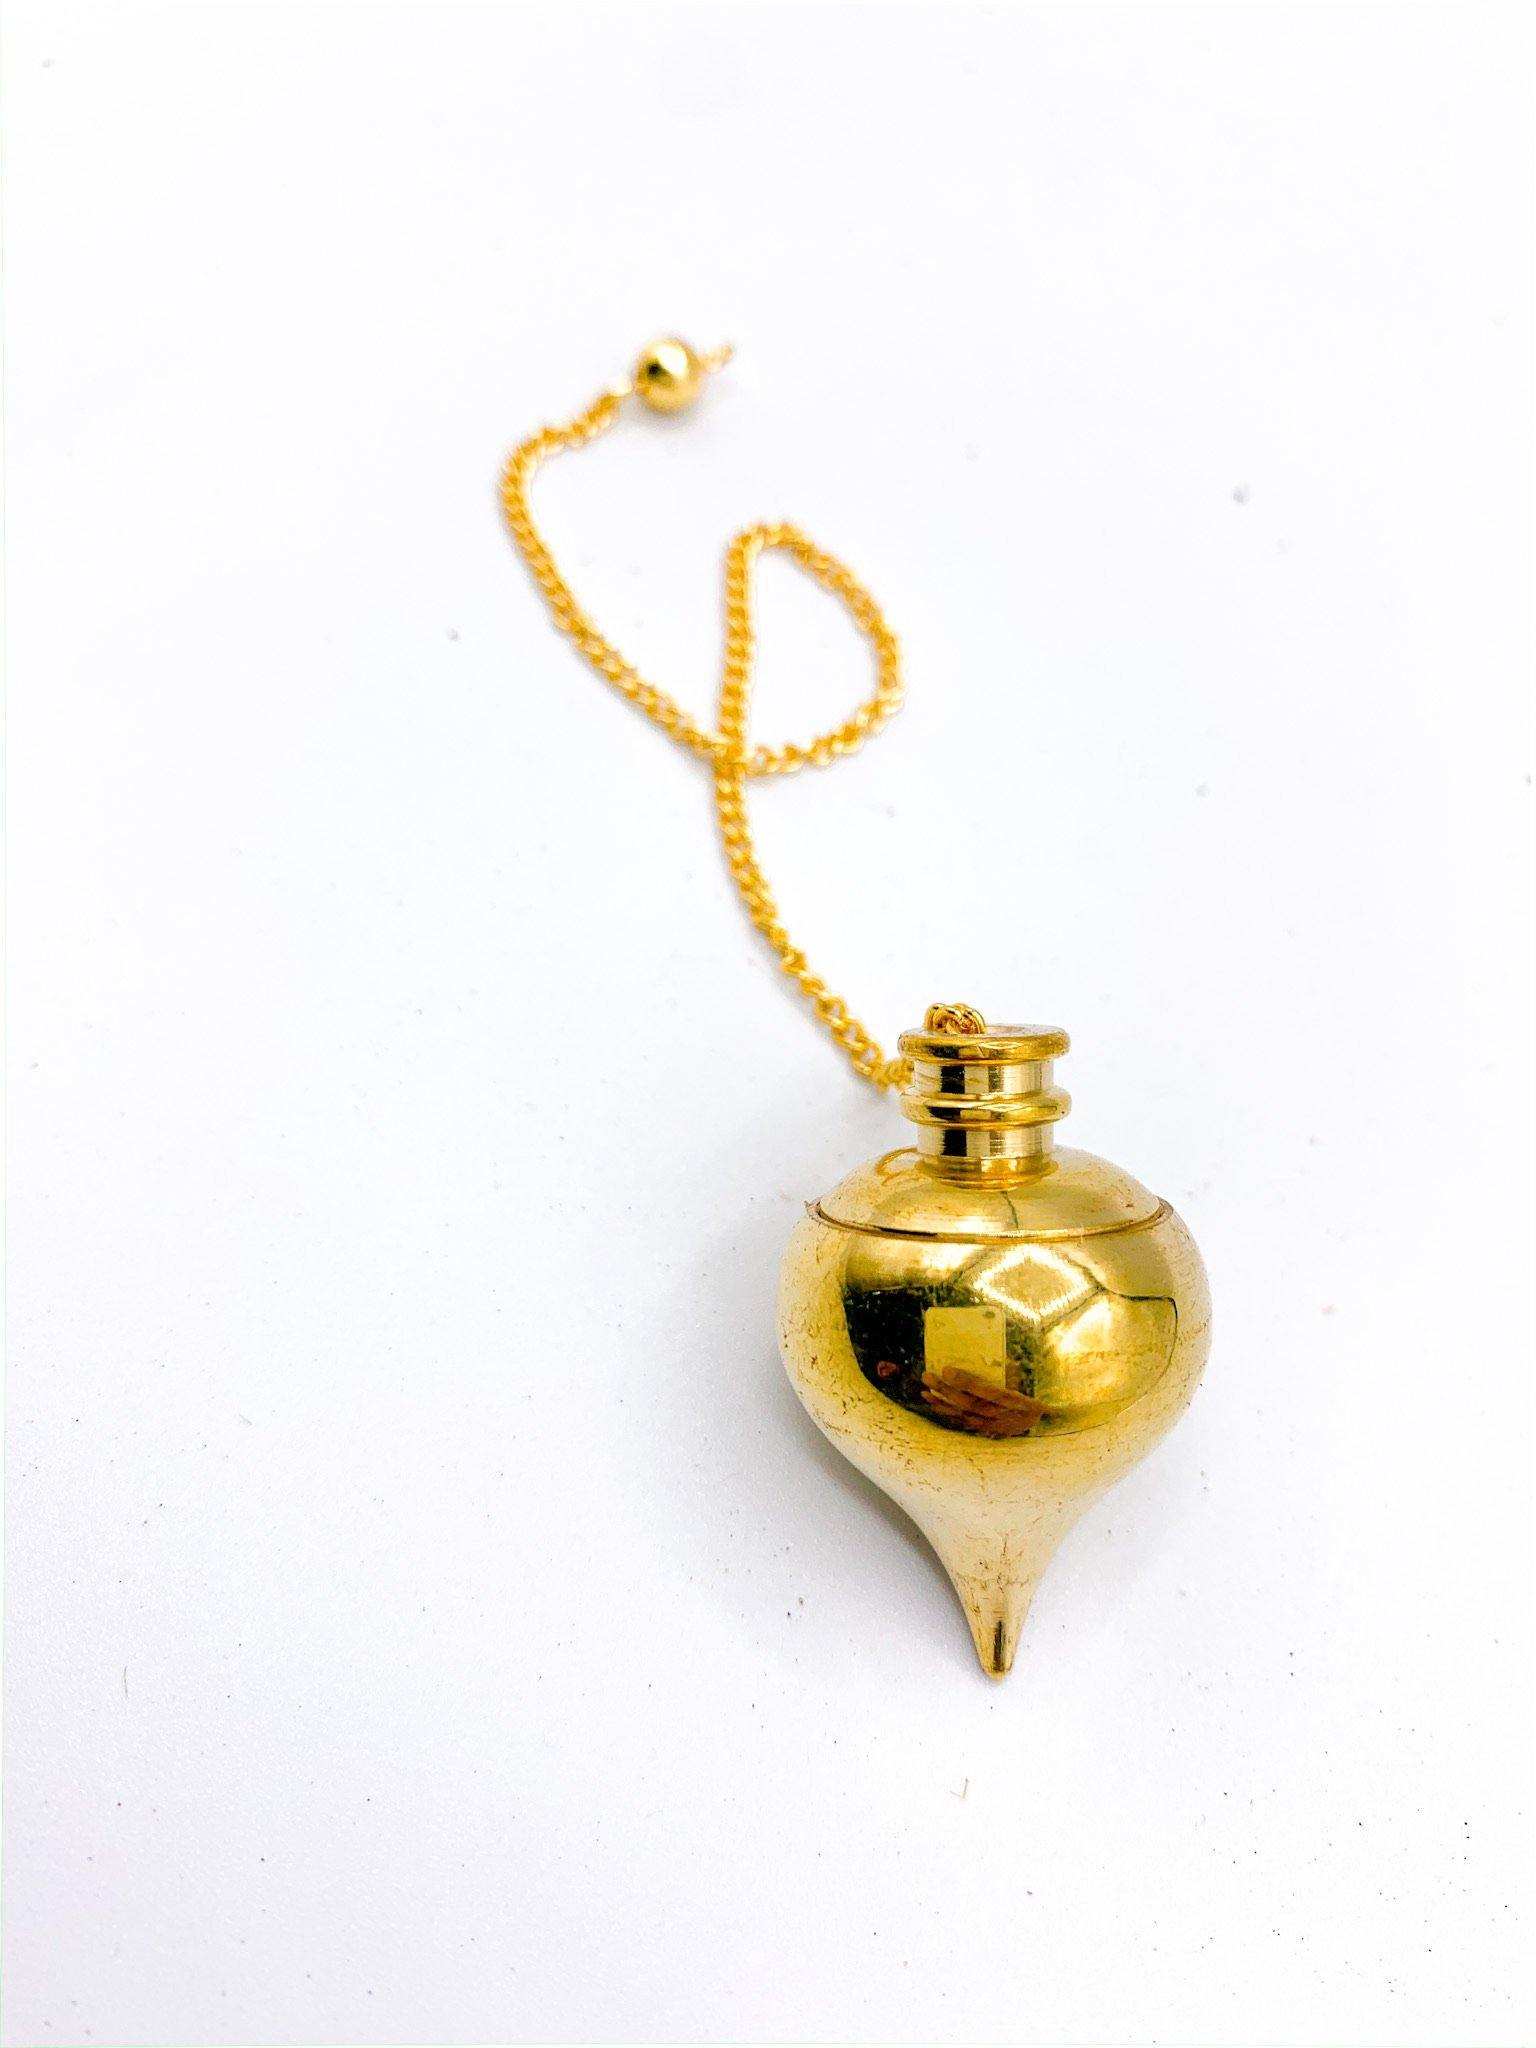 Brass Pendulum | Screwable Pendulum | Add-in Magical Oil for Divination - Life Gardening Tools LLC